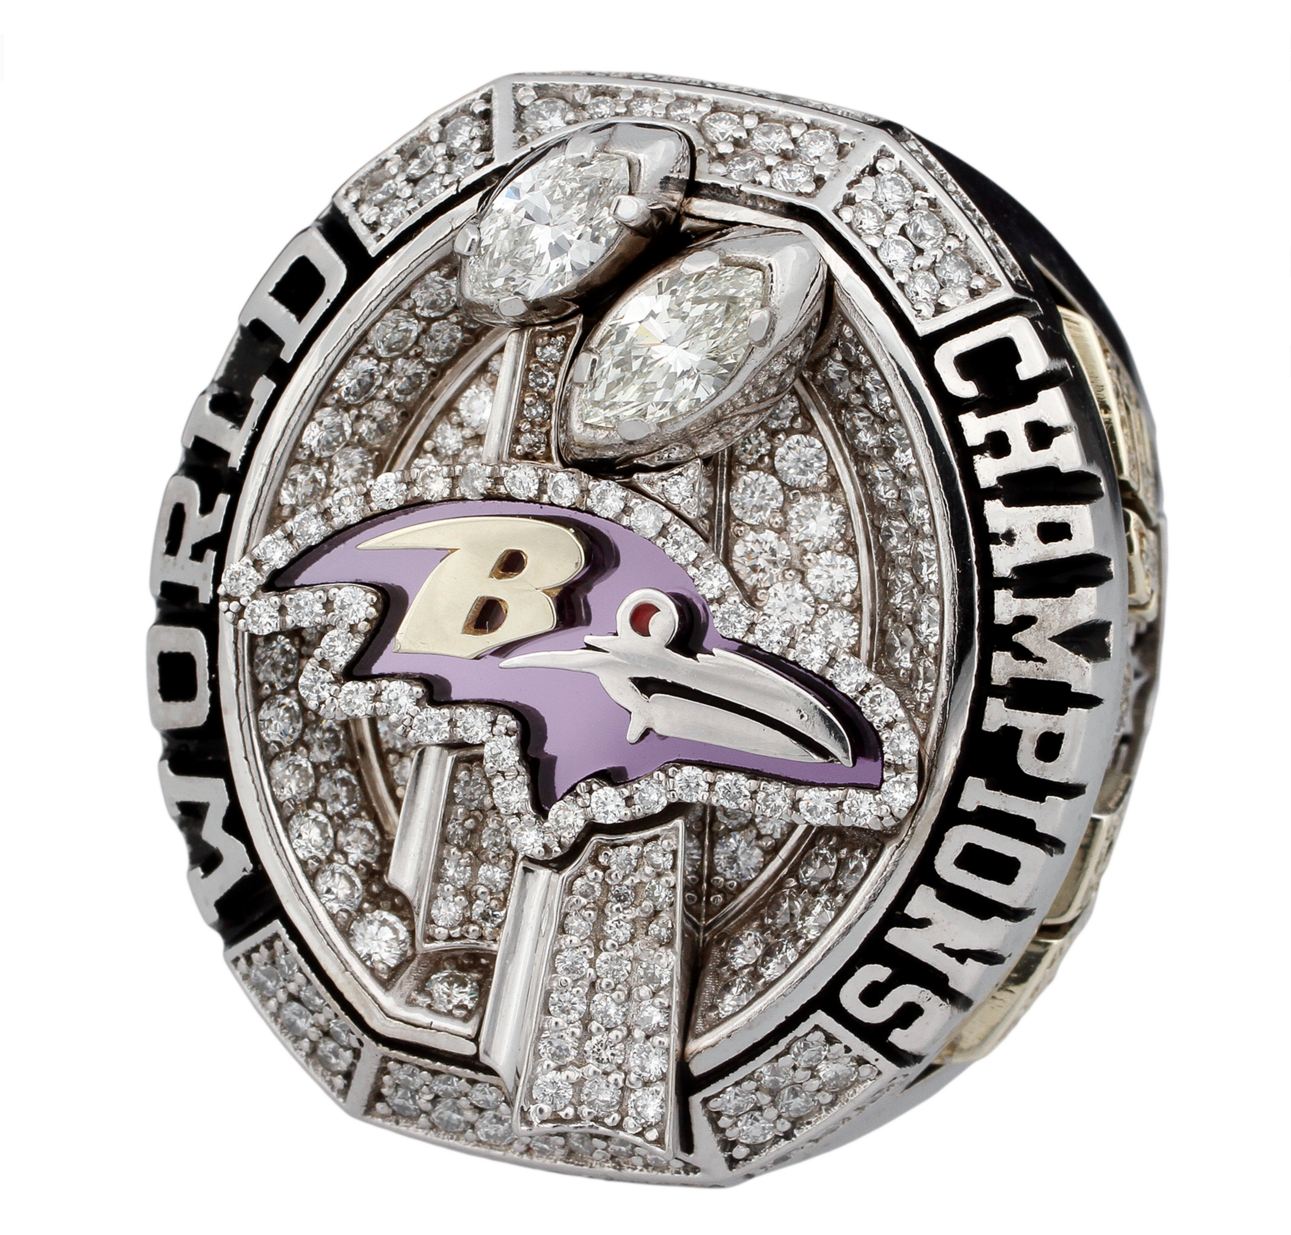 bowl articles at articleview super ravens auctions nfl a and available dozen championship ring rings goldin